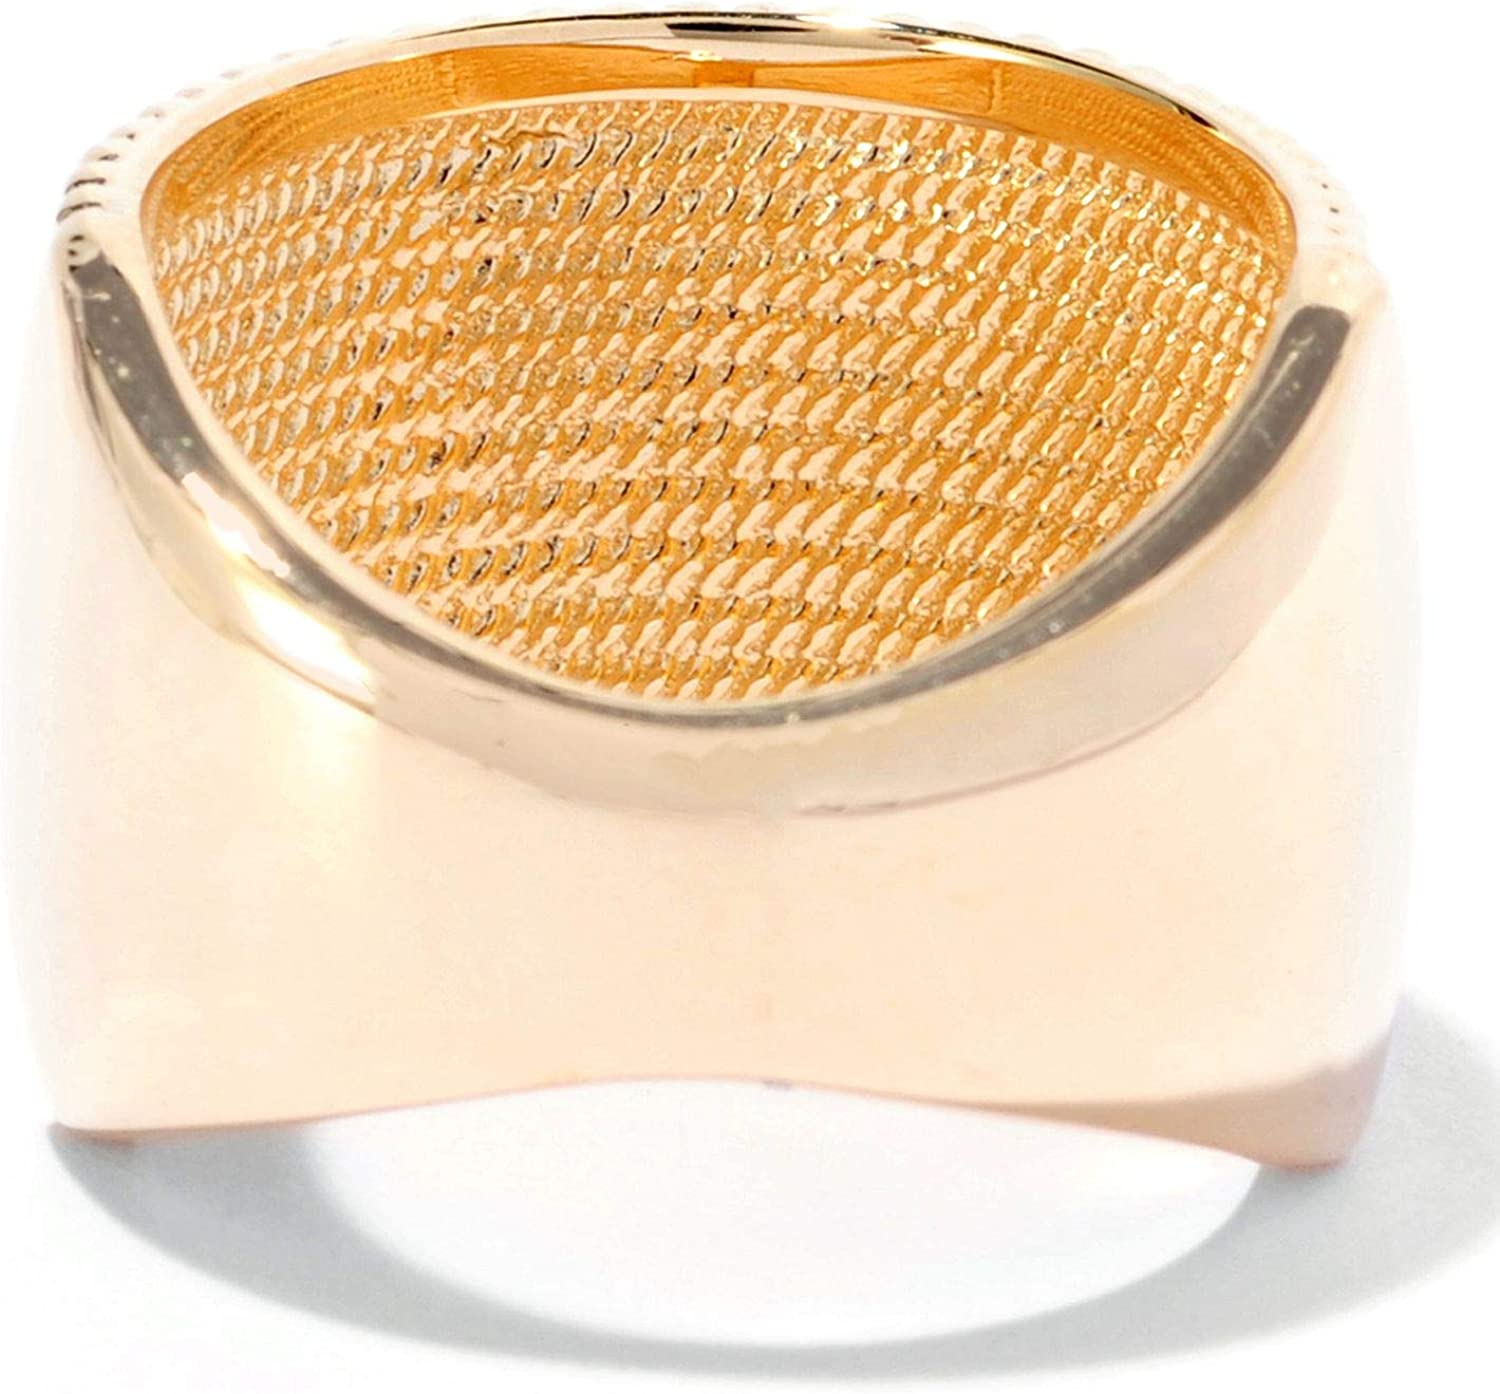 April Venus 18K Gold Plated Bead Textured Wide Band Ring